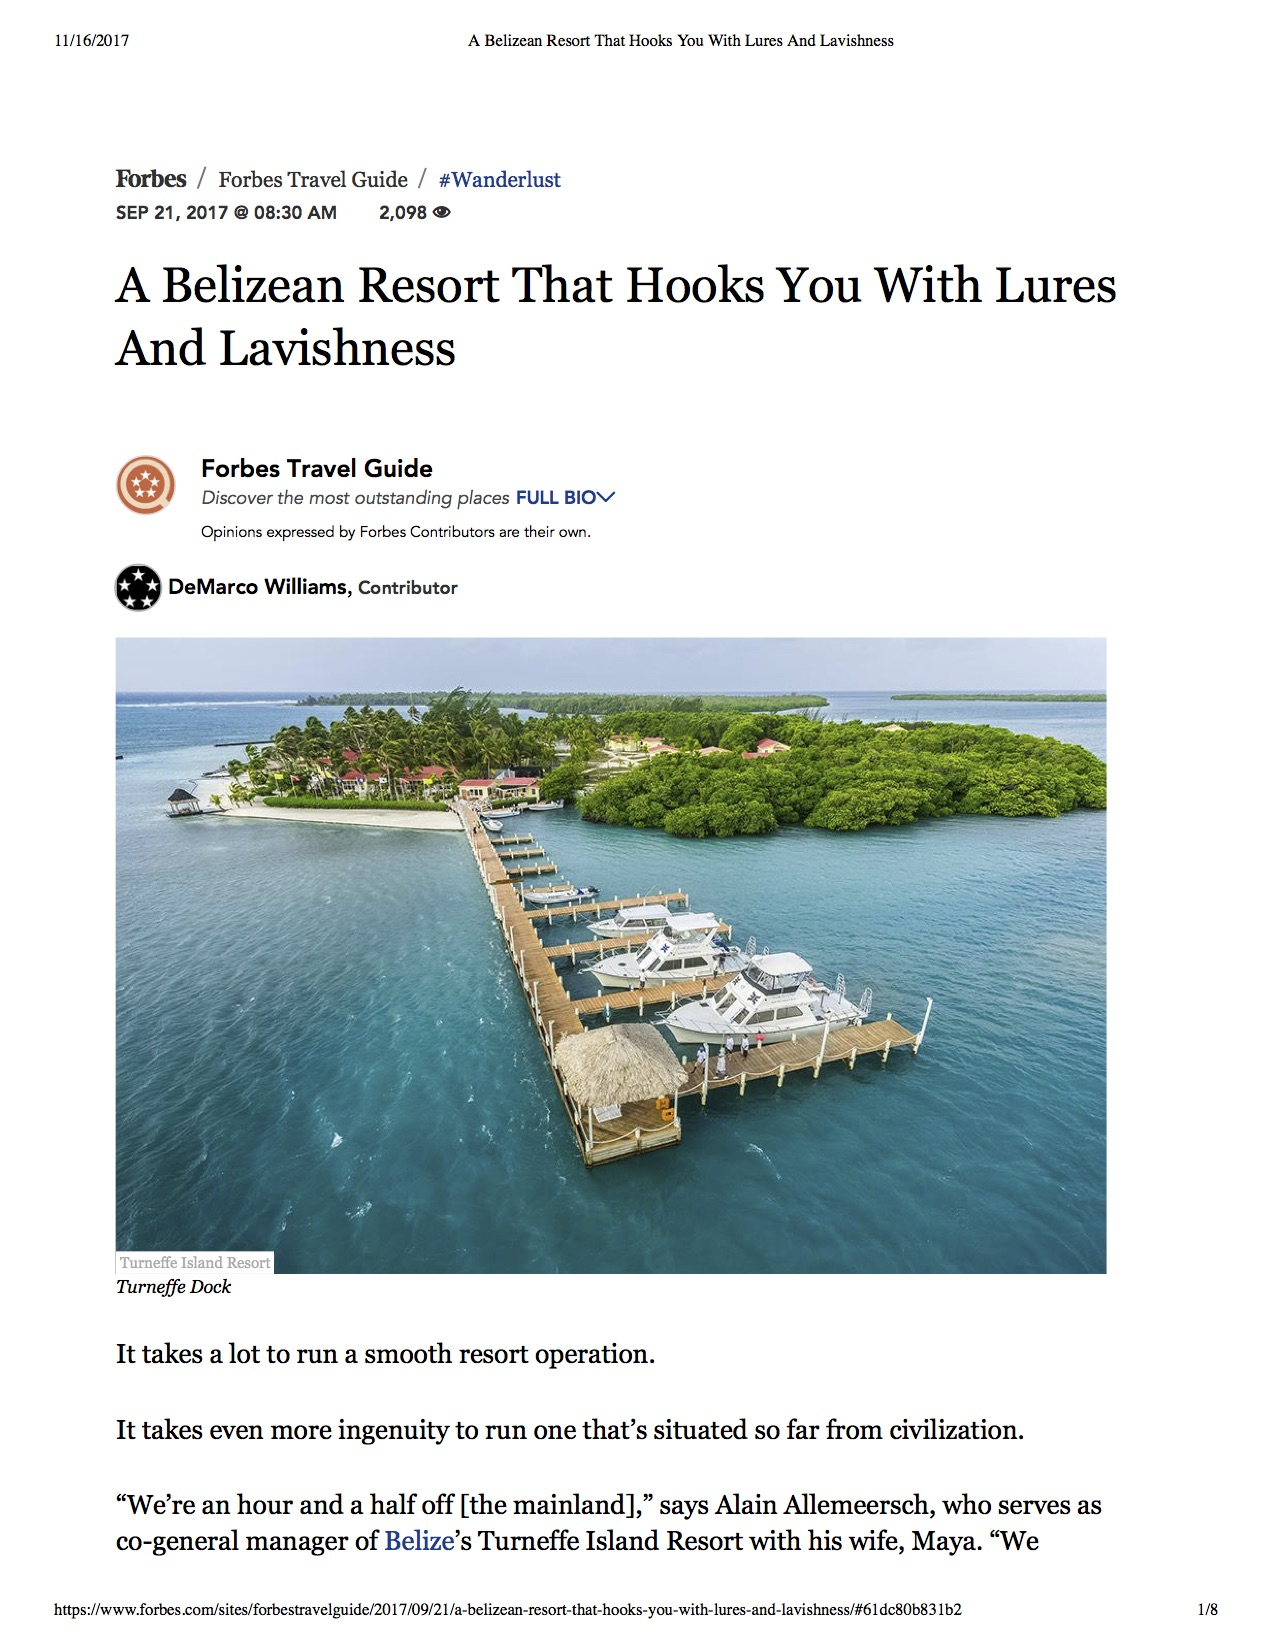 Belize Dive Resort by Forbes